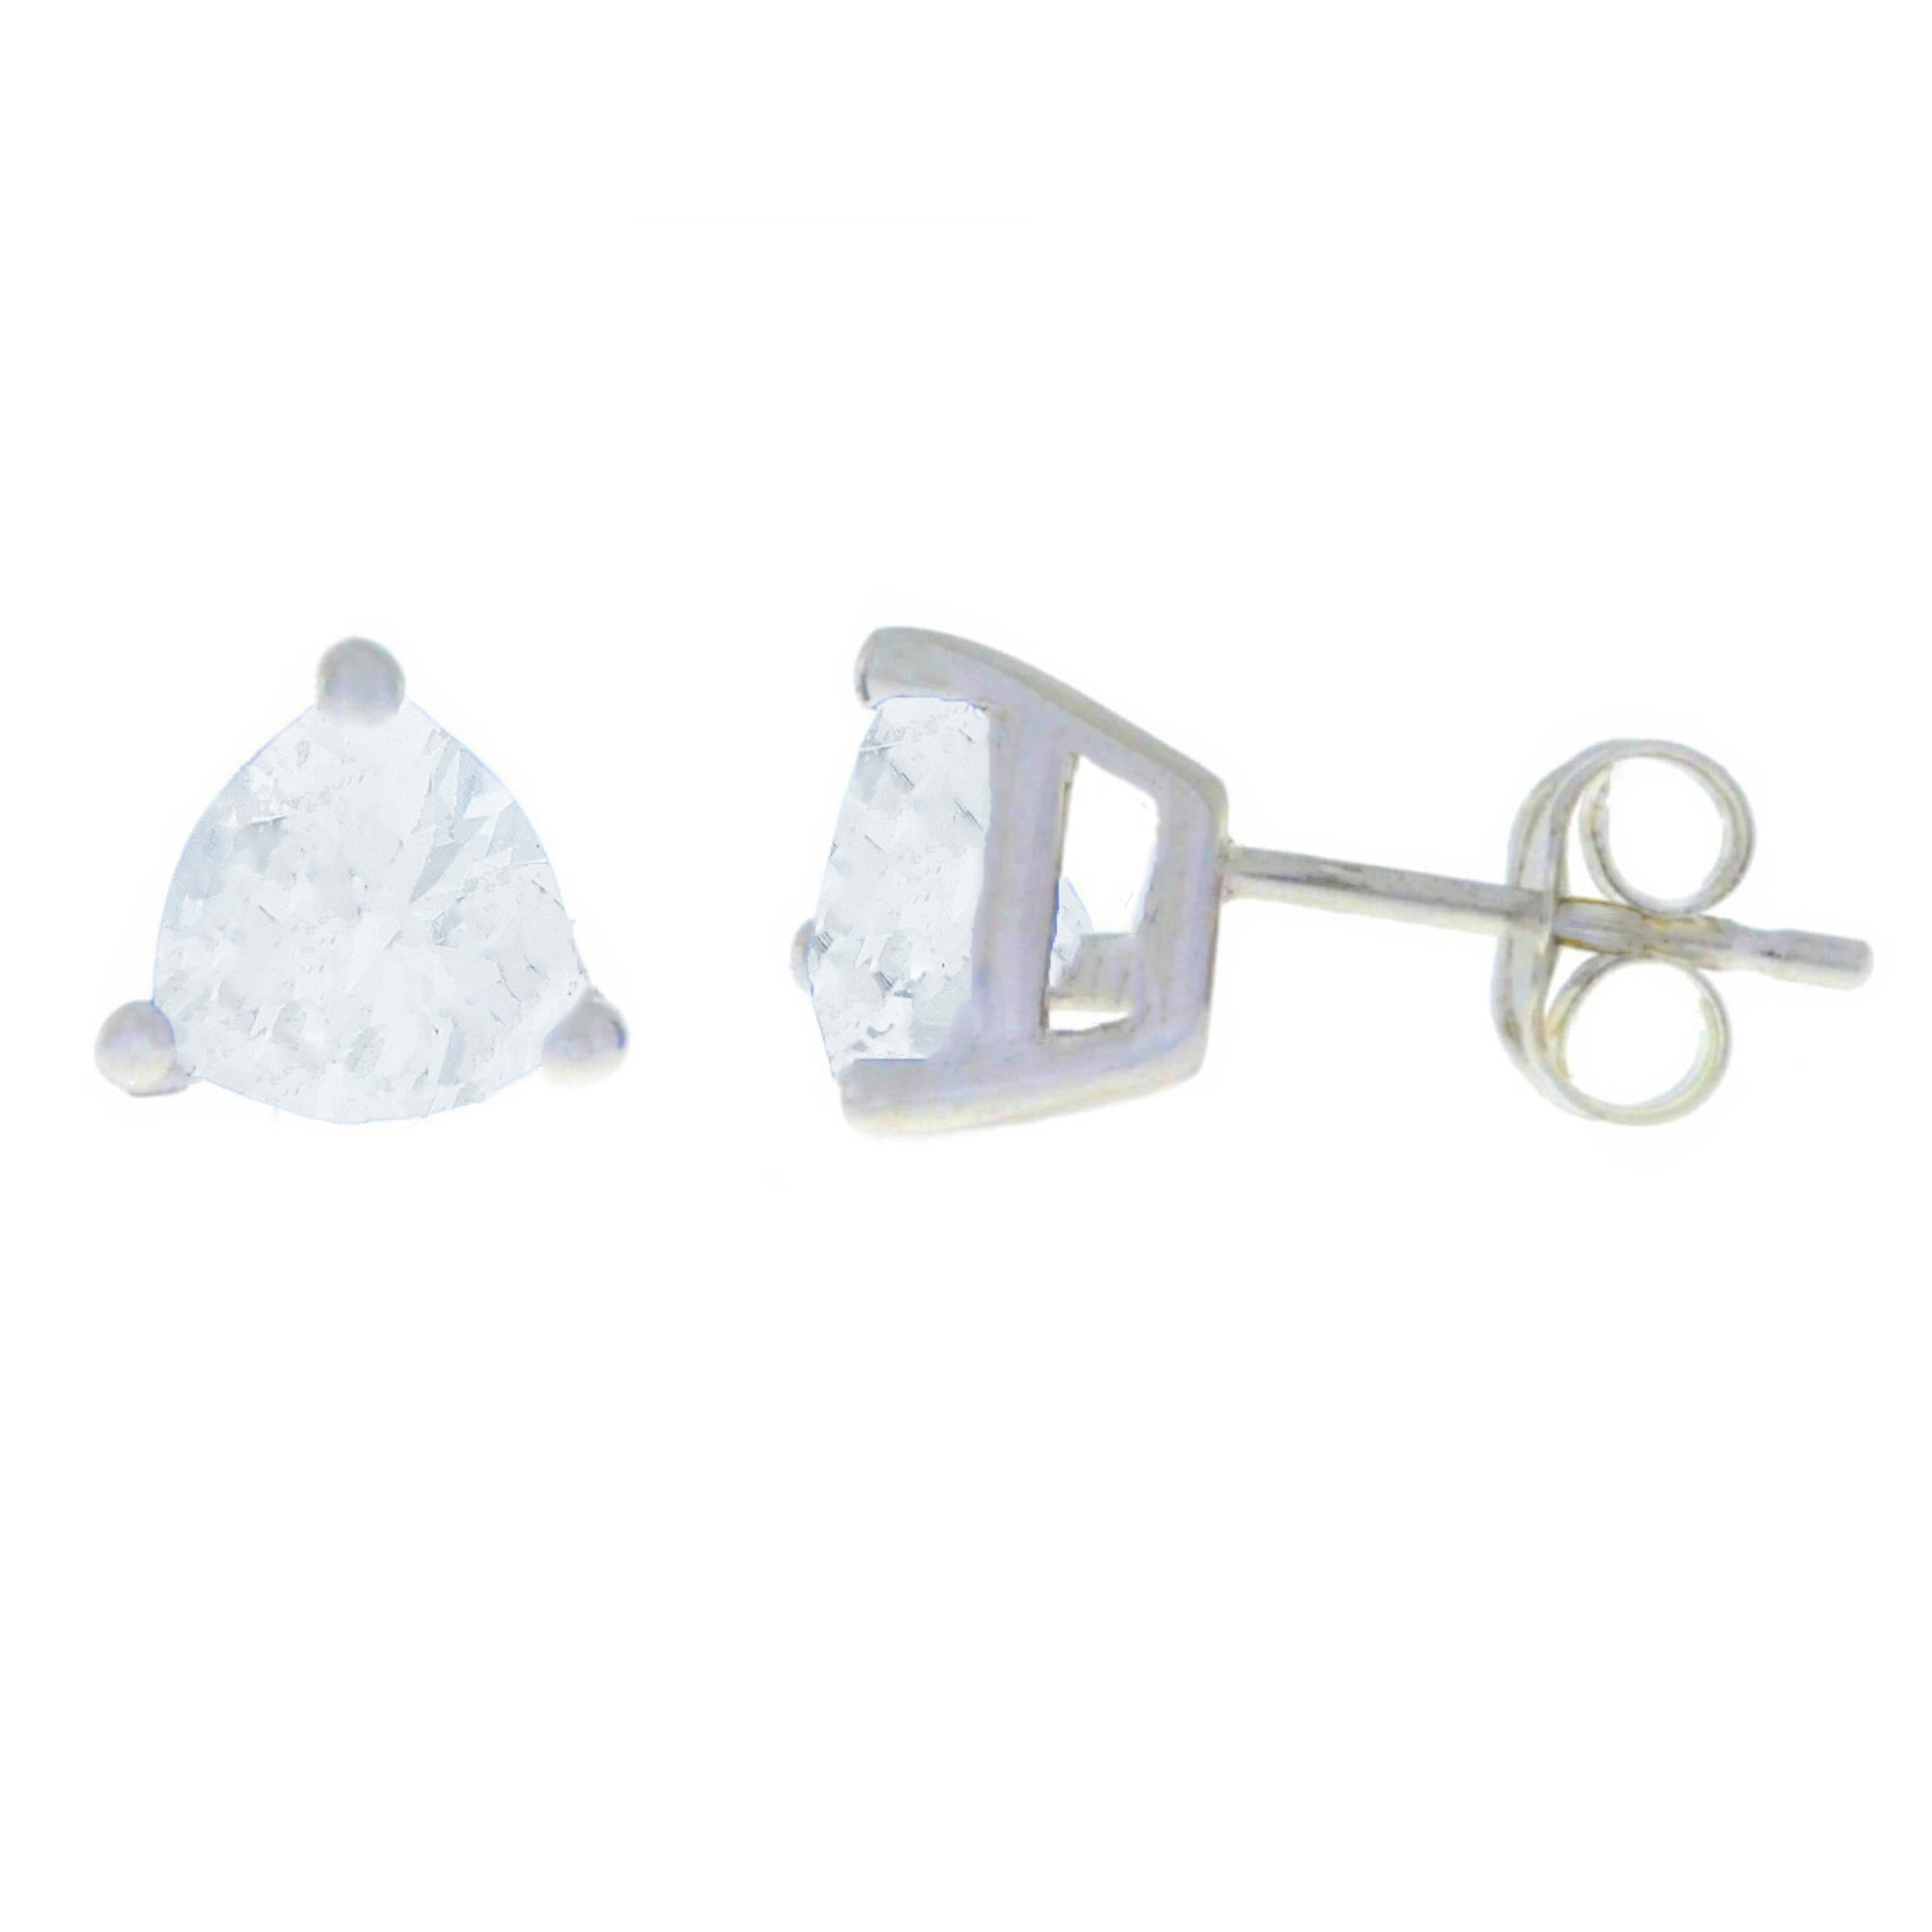 2 Ct White Sapphire Trillion Stud Earrings .925 Sterling Silver